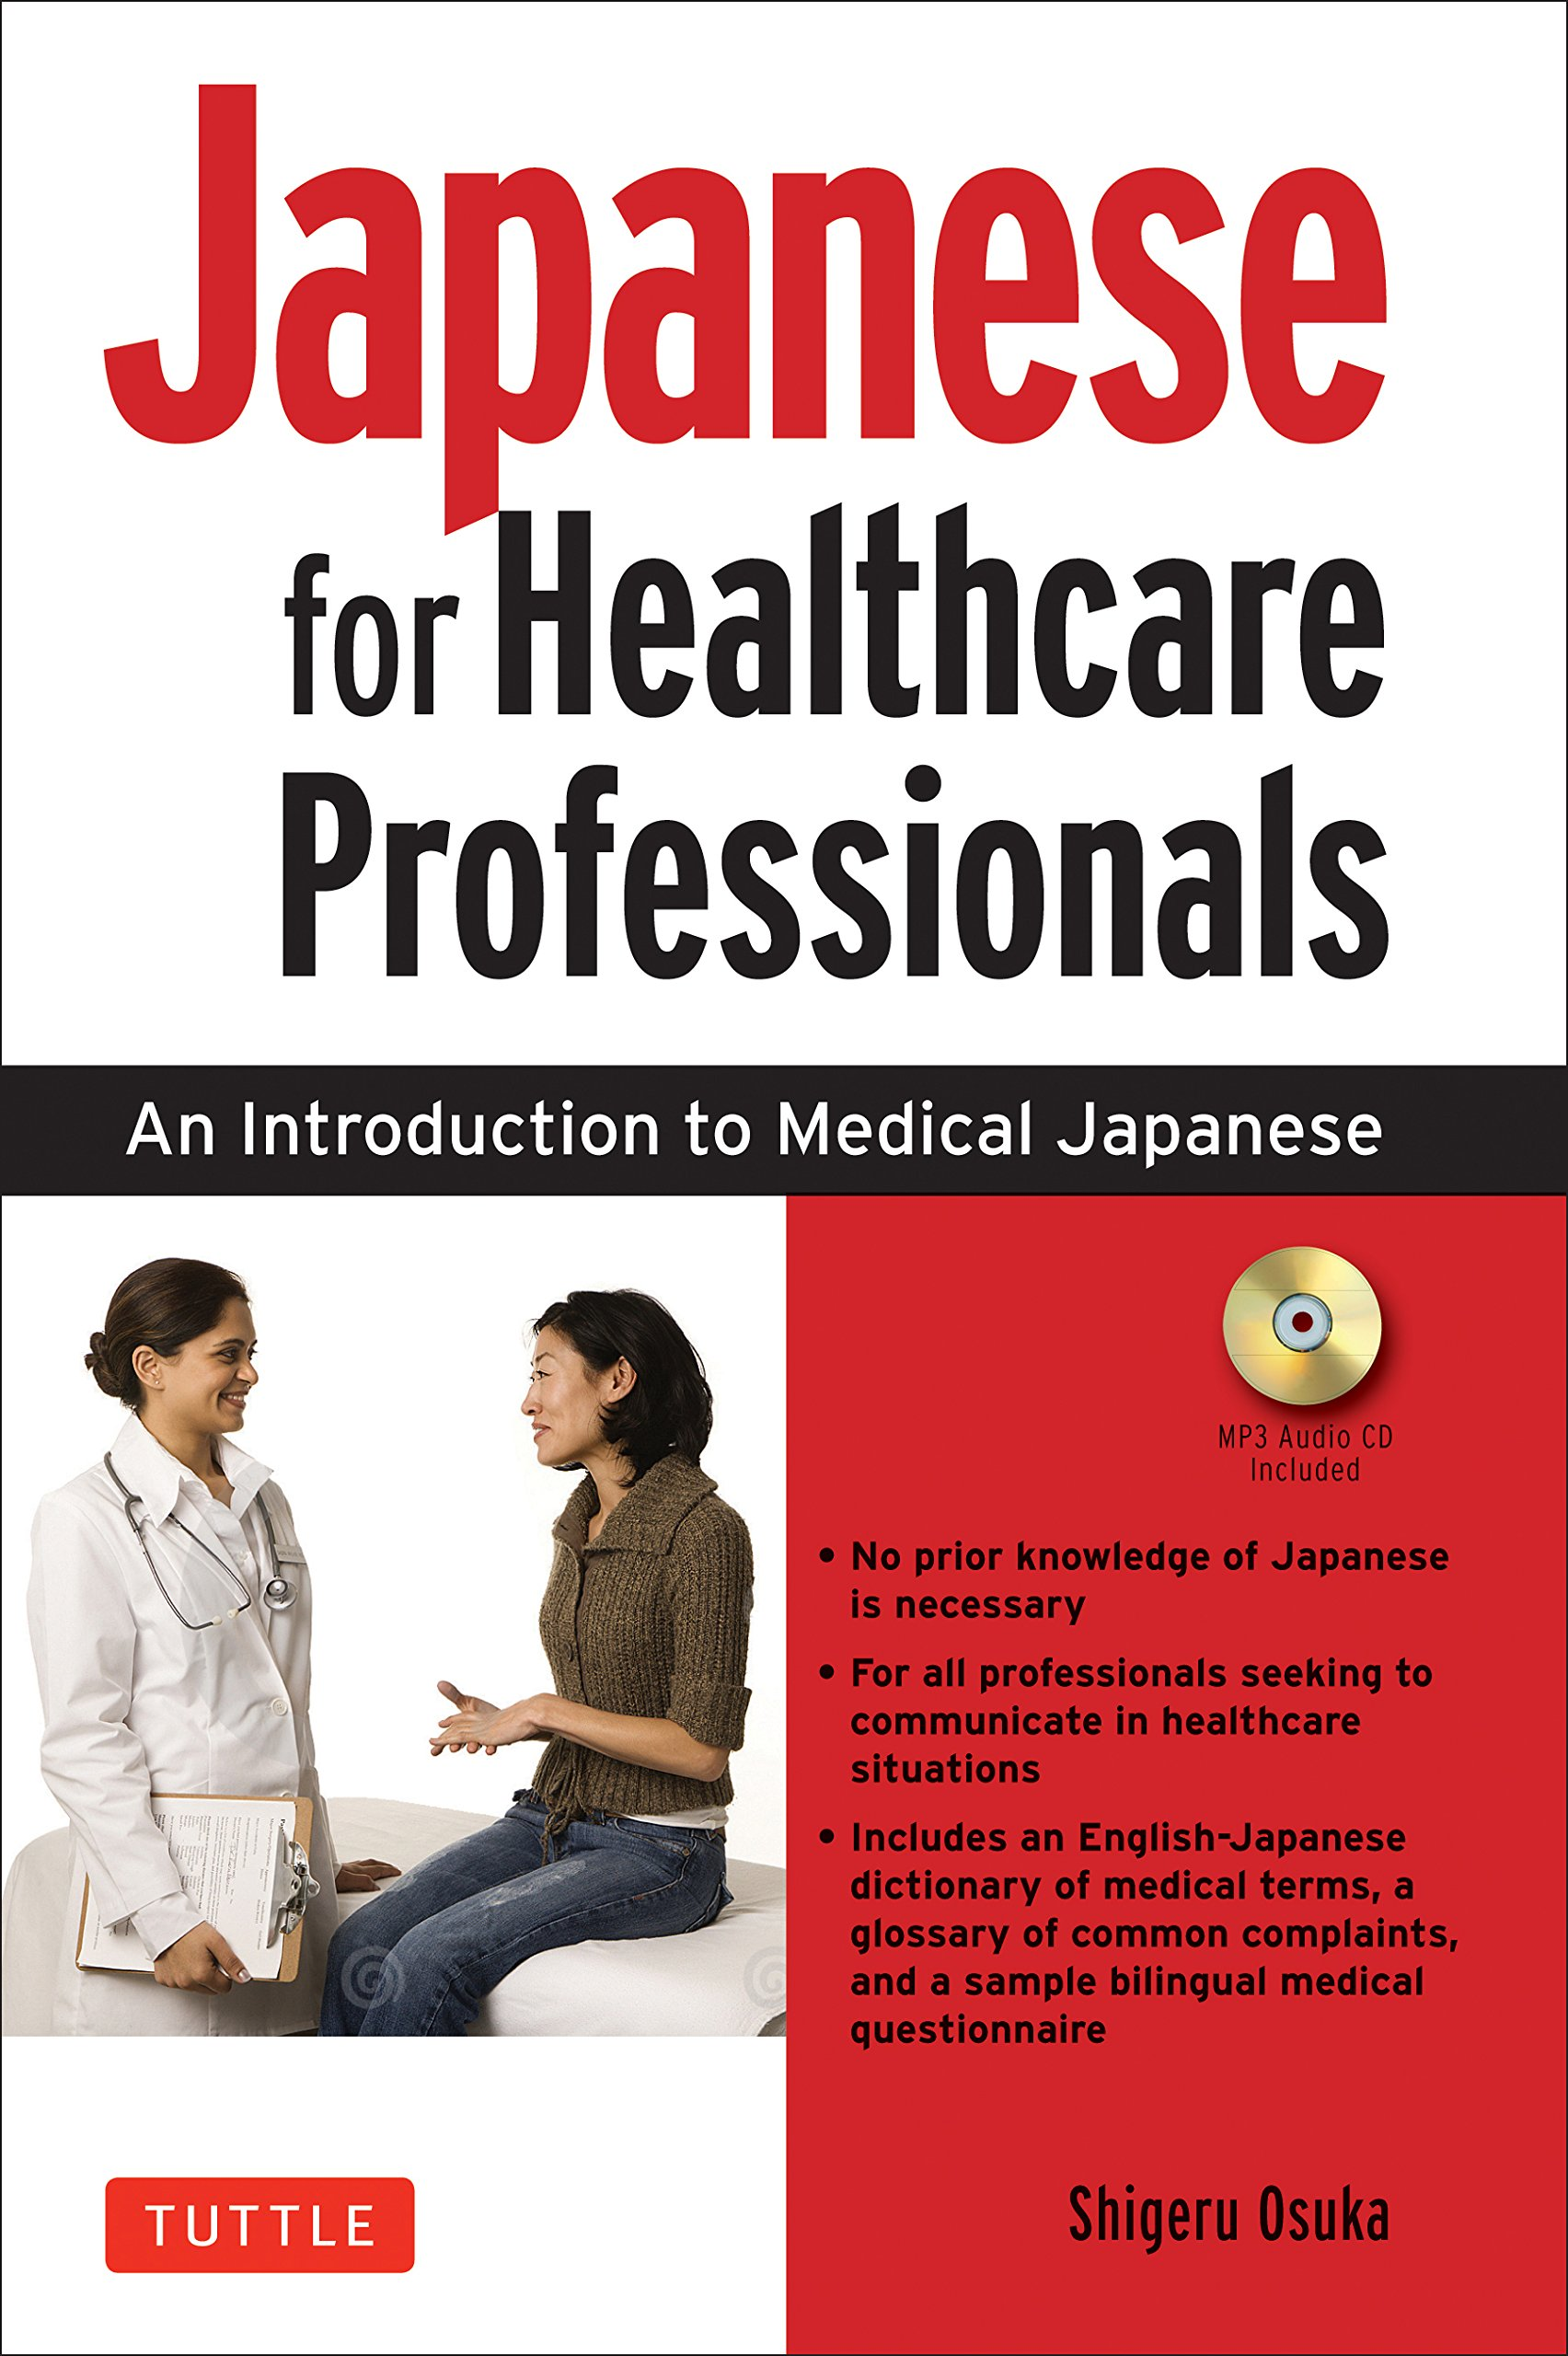 Japanese for Healthcare Professionals: An Introduction to Medical Japanese